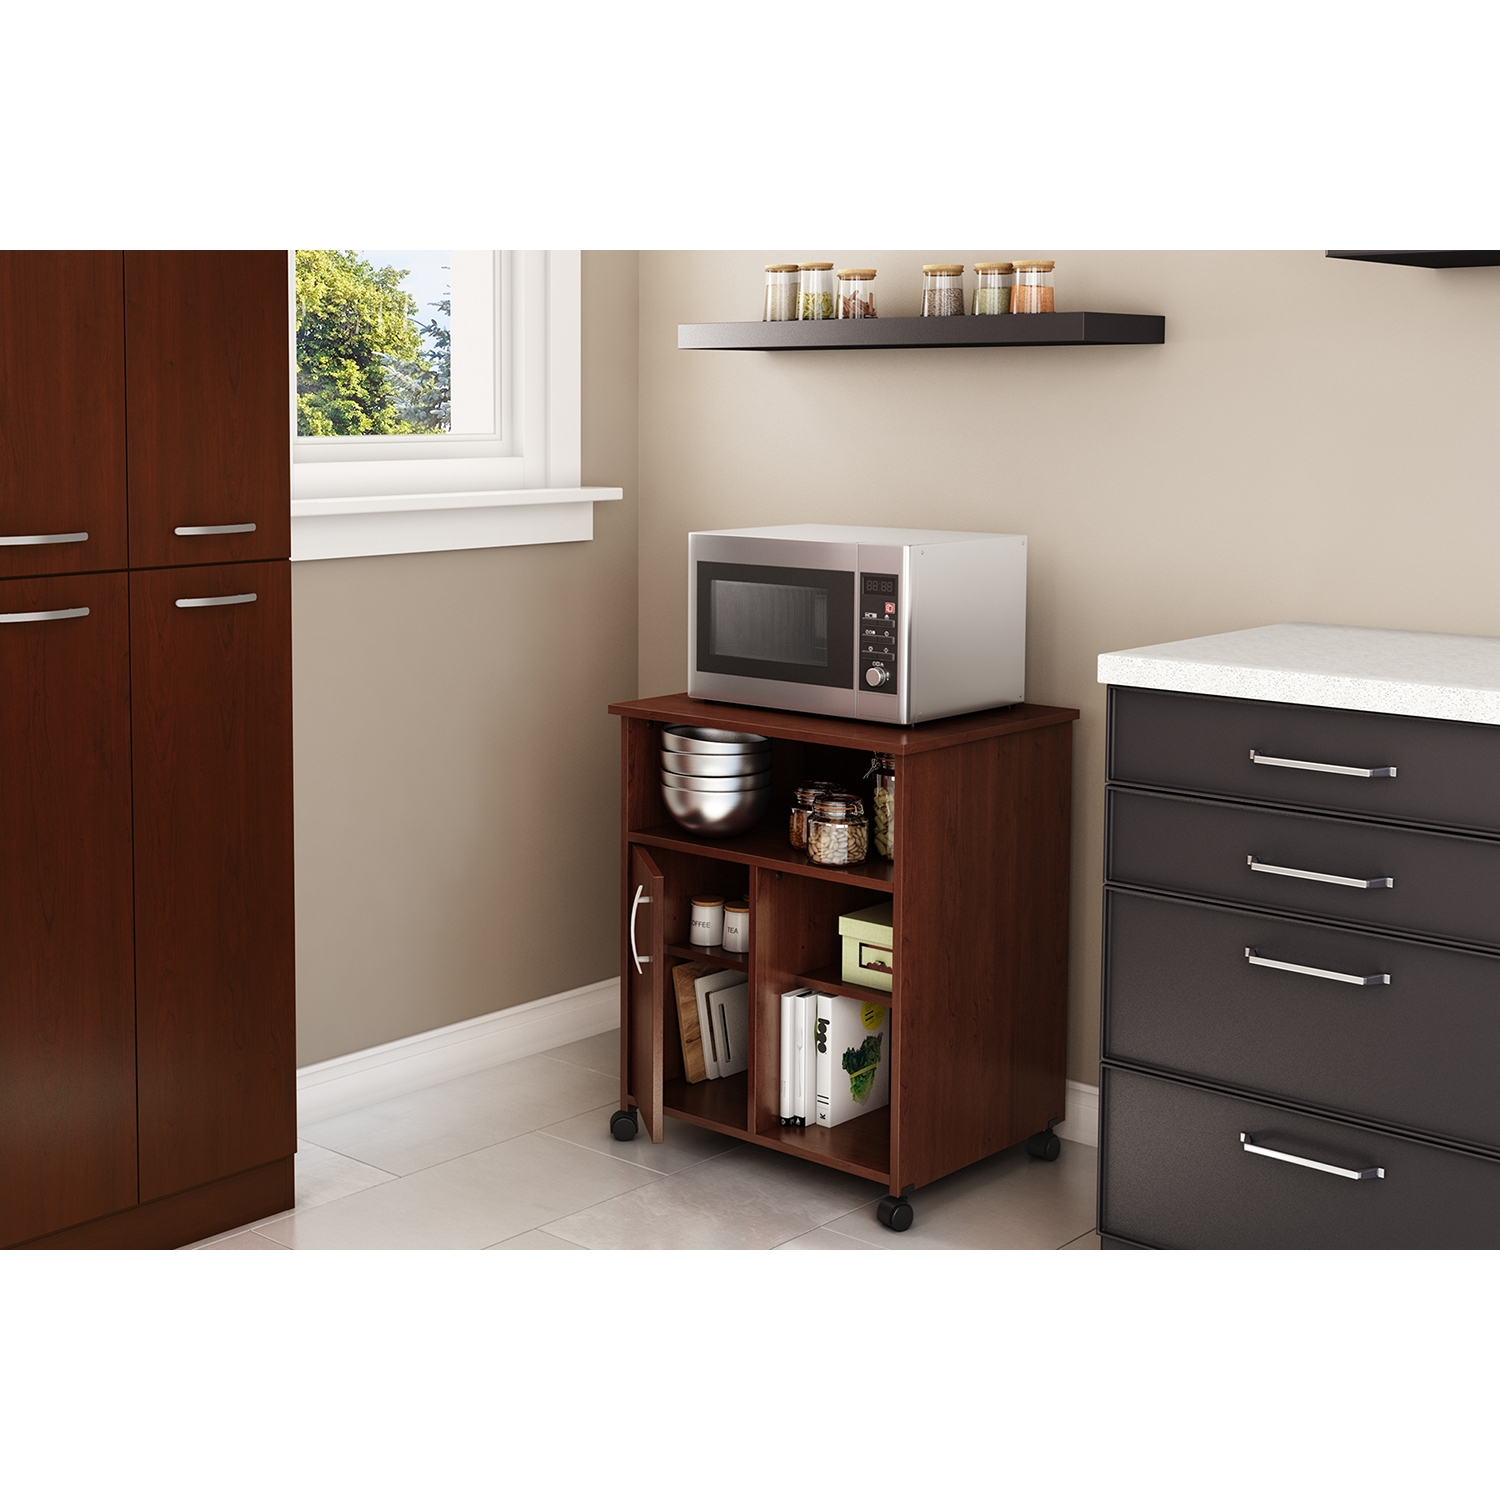 Axess Microwave Cart - Storage, Wheels, Royal Cherry - SS-7246B1